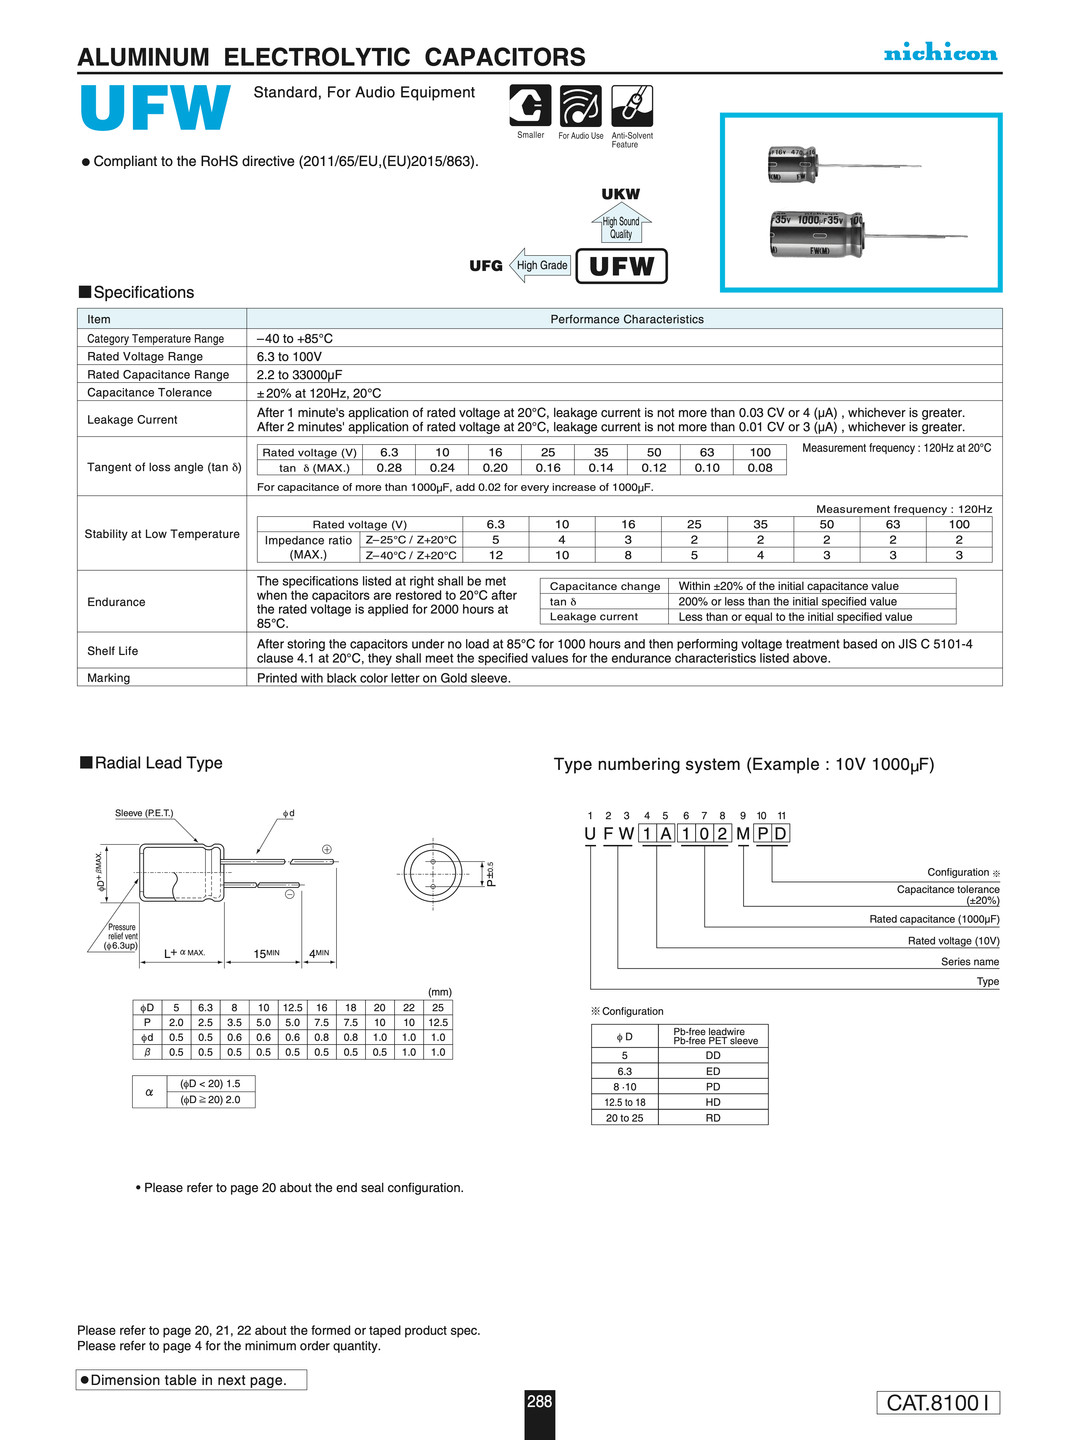 Nichicon UFW Series Capacitor Data Sheet